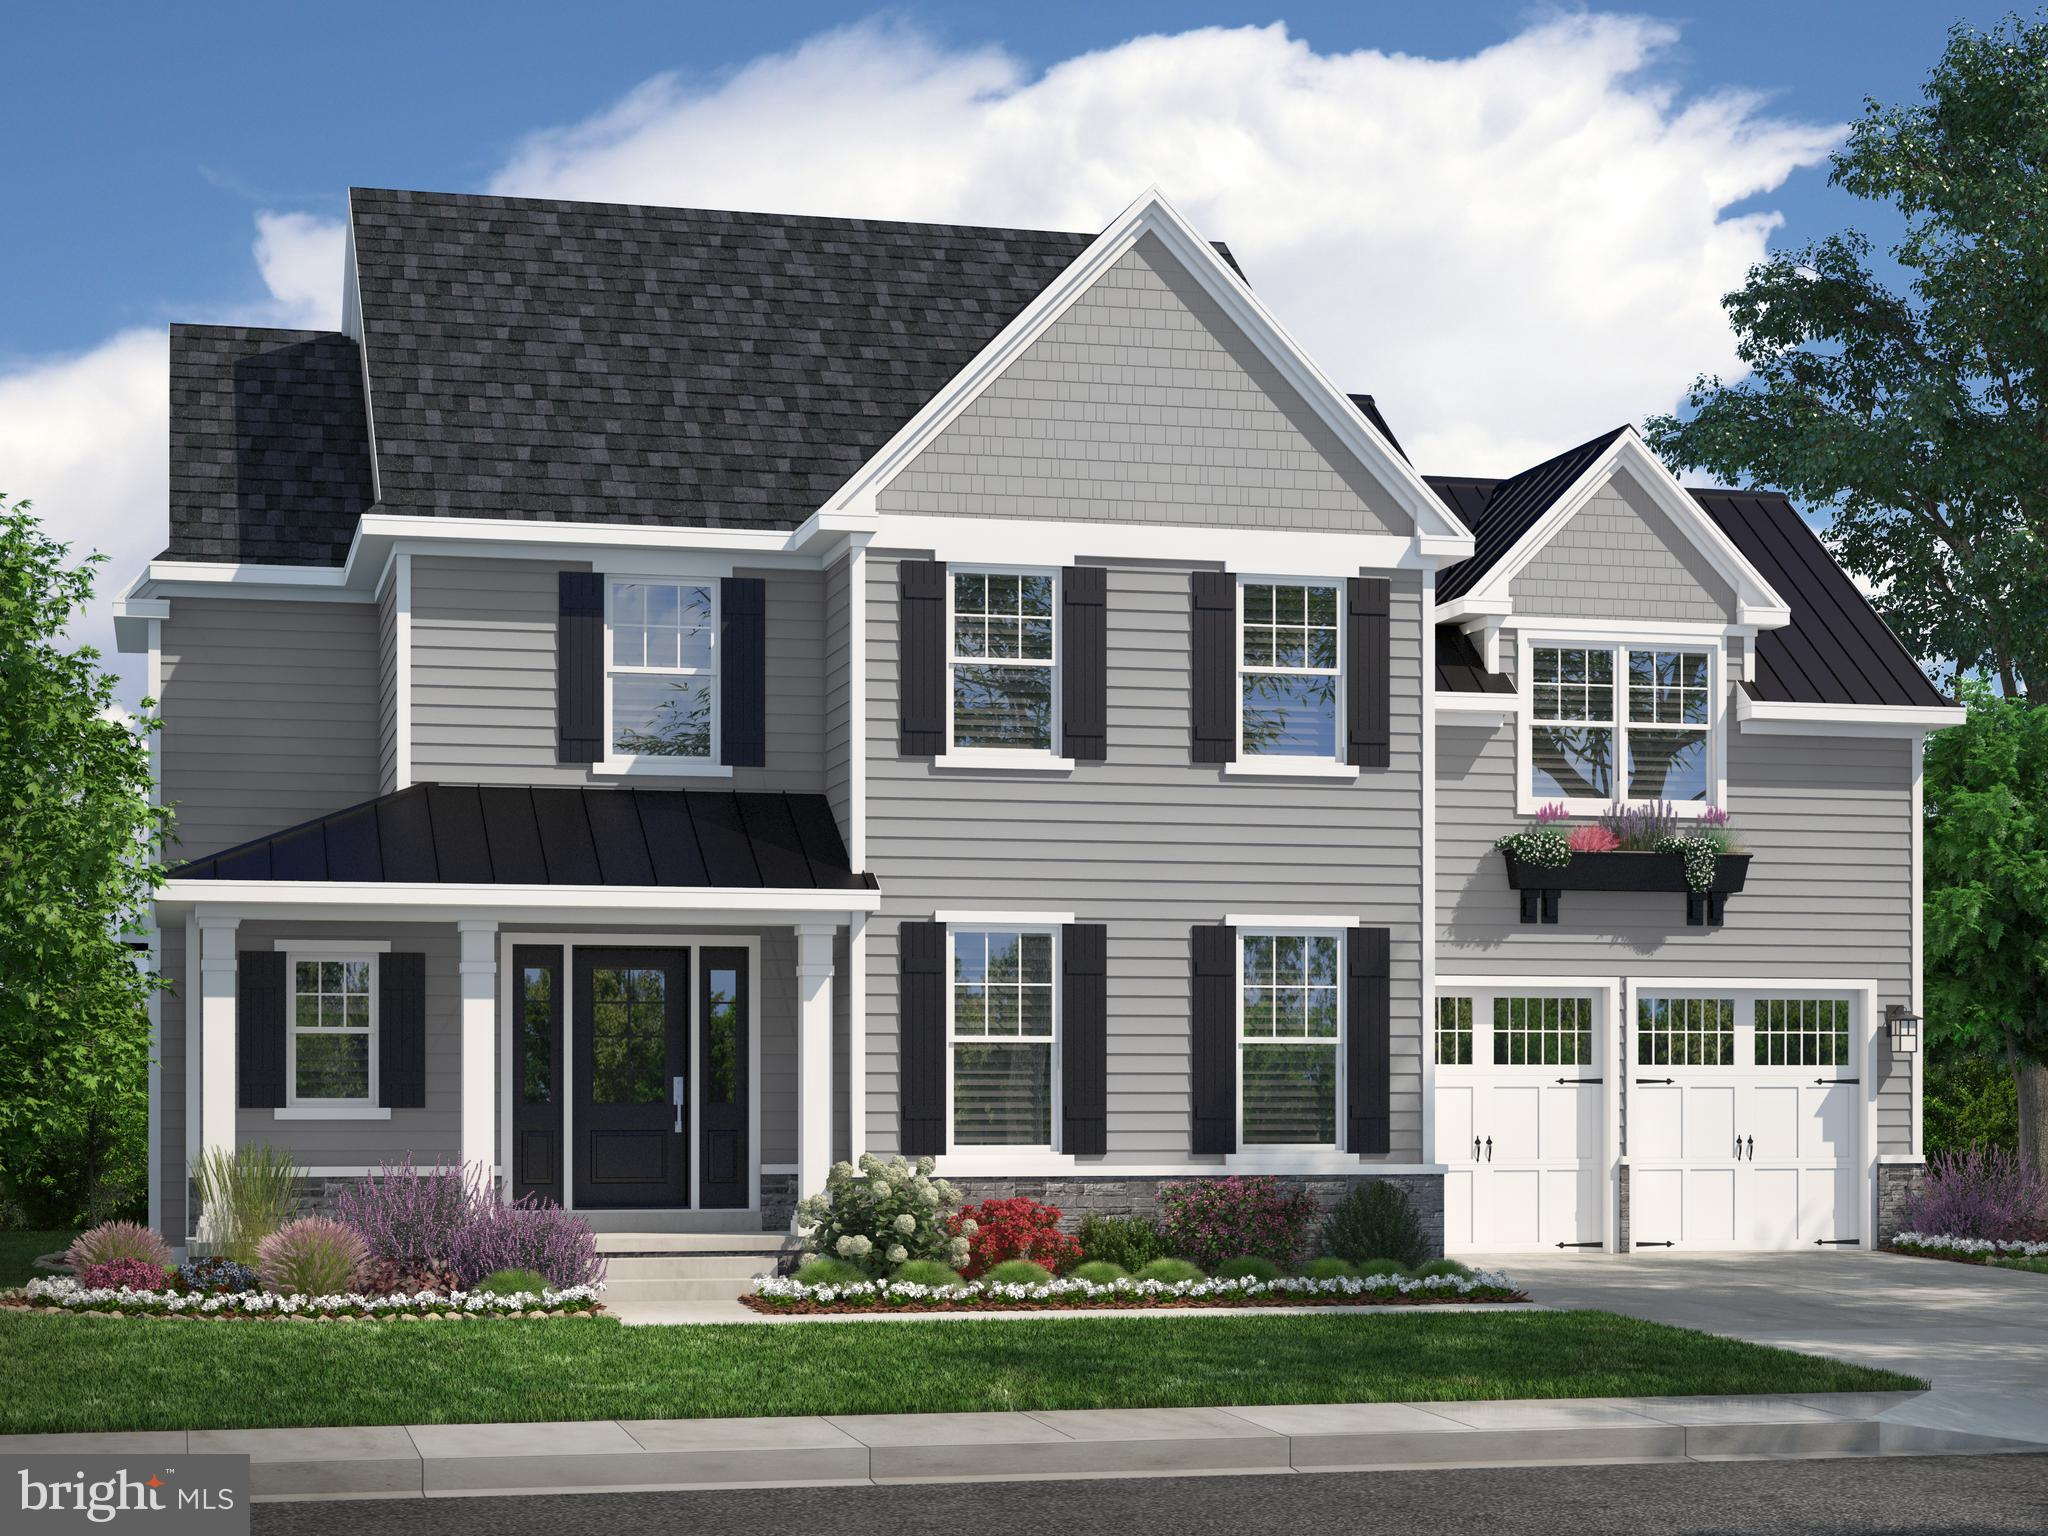 """Welcome to Berwyn Village- Stonehaven Homes' latest New Construction Community offering 18 luxury single-family homes in a carefree/maintenance free environment.  These homes are conveniently located in #1 award winning TE school district and are walking distance to the town of Berwyn and the train! Whether you have a hectic work schedule, busy home life or love to travel, you can feel secure in knowing your home will be cared for while you are on the go! The elegant Belton model combines style and classic design features that will appeal to even the most discerning buyer. The gourmet kitchen is central to this home's design and is the perfect space to entertain guests or spend time with loved ones. Open to the sun drenched great room, the gourmet kitchen features Bosch appliances, 42"""" cabinets by Century and an oversized center island. This model also offers a butler's pantry connecting the kitchen to the dining room acting as the perfect space for a wet bar, serving area or additional storage.   The Belton contains elevator compatibility and is offered with 3 or 4 bedrooms on the 2nd level or with a first-floor master suite. The owner's suite features large walk in closets and a sumptuous master bath complete with an oversized shower, private toilette, and soaking tub. Adding to the well-crafted design of this home is a first a home office off the entry and a 2nd floor laundry room. Additionally, there is space in the lower level or 3rd floor waiting to be finished if desired. Tucked into an existing community, these homes will have no through traffic. Furthermore, a 6ft western cedar privacy fence and lush plantings will surround the community to create a nestled feel.   Don't miss out on this rare opportunity to experience the luxury of new construction living in a carefree domain. HOA services include lawn mowing, leaf cleanup, annual mulching, snow removal of driveways, walkways and roadways and trash.  Walking distance to the town of Berwyn, the train station"""